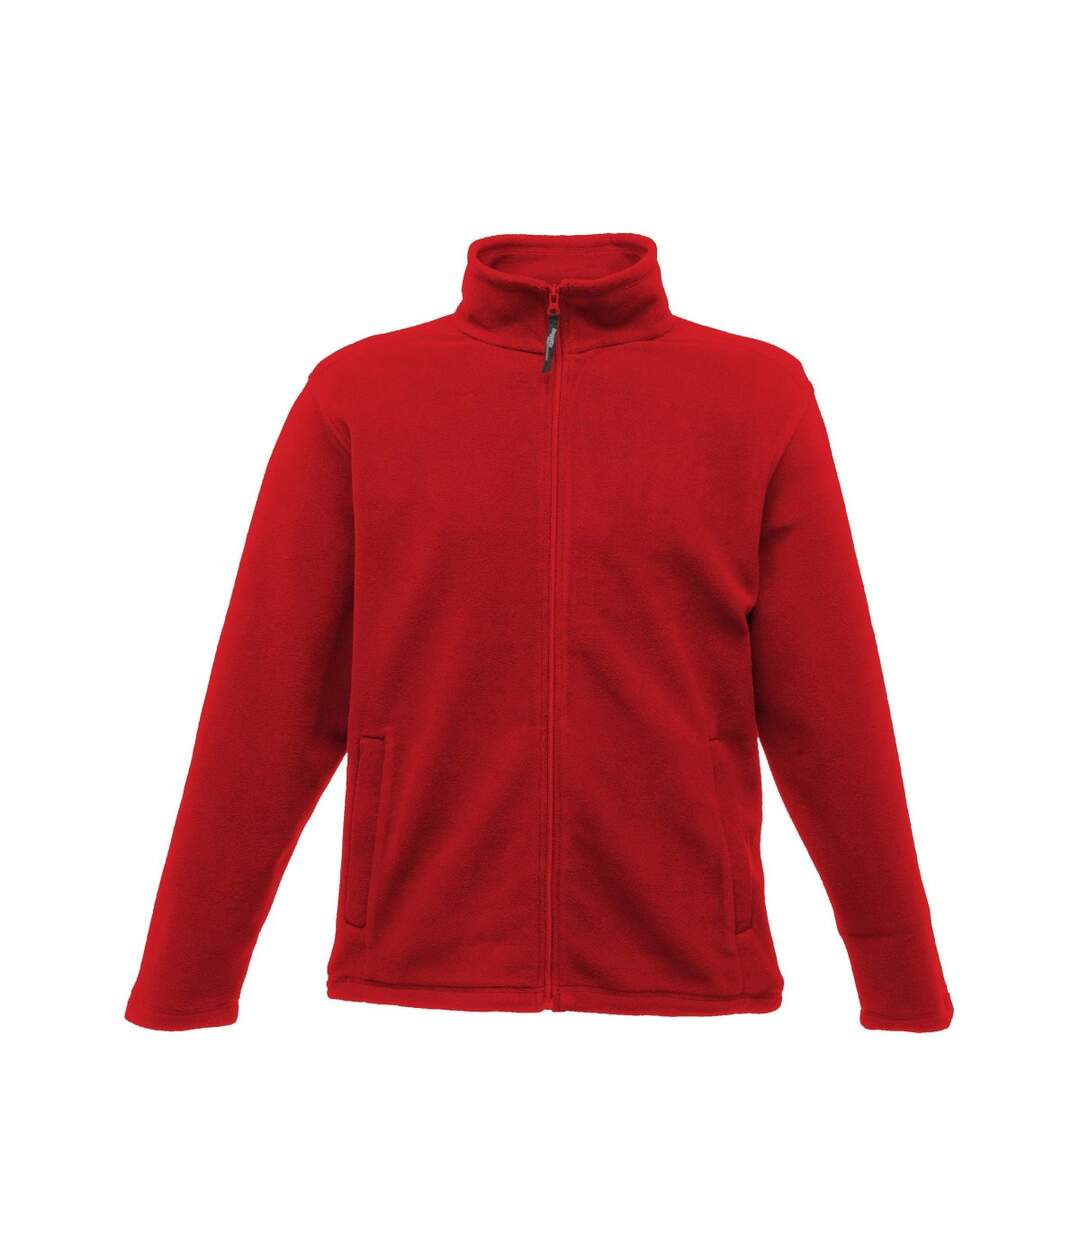 Regatta Mens Plain Micro Fleece Full Zip Jacket (Layer Lite) (Classic Red) - UTBC2042